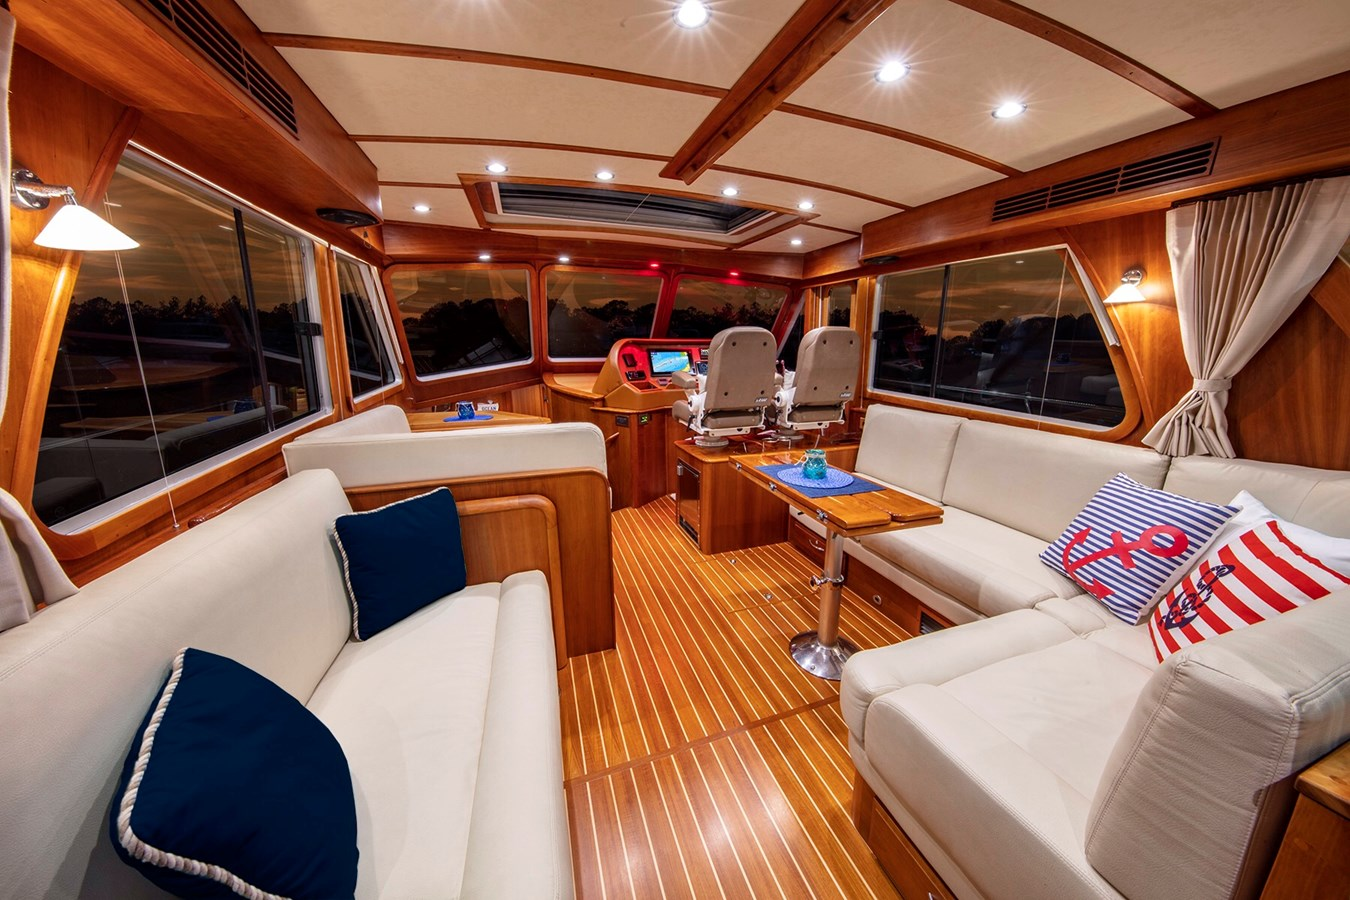 18 - 48 SABRE YACHTS For Sale